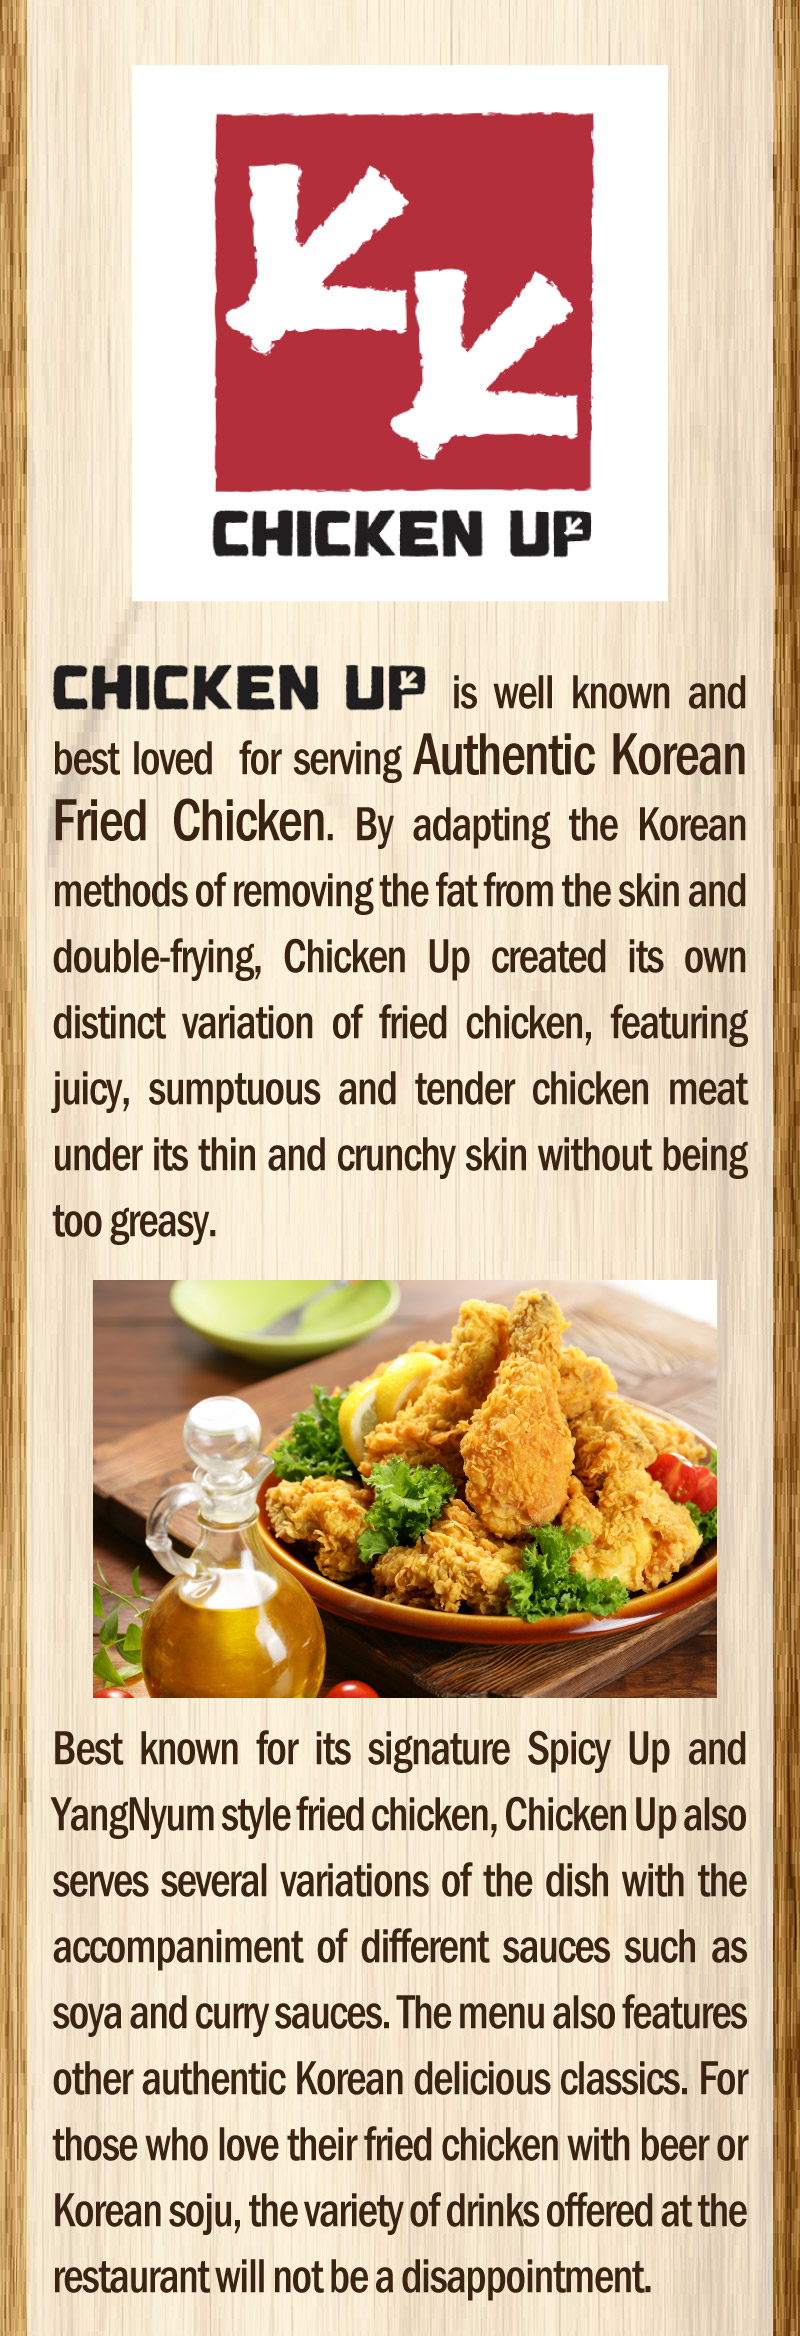 Chicken Up SG 50% Off 4pcs Wings Coupon Valid 30 Days after Purchase - Why Not Deals 5 & Promotions